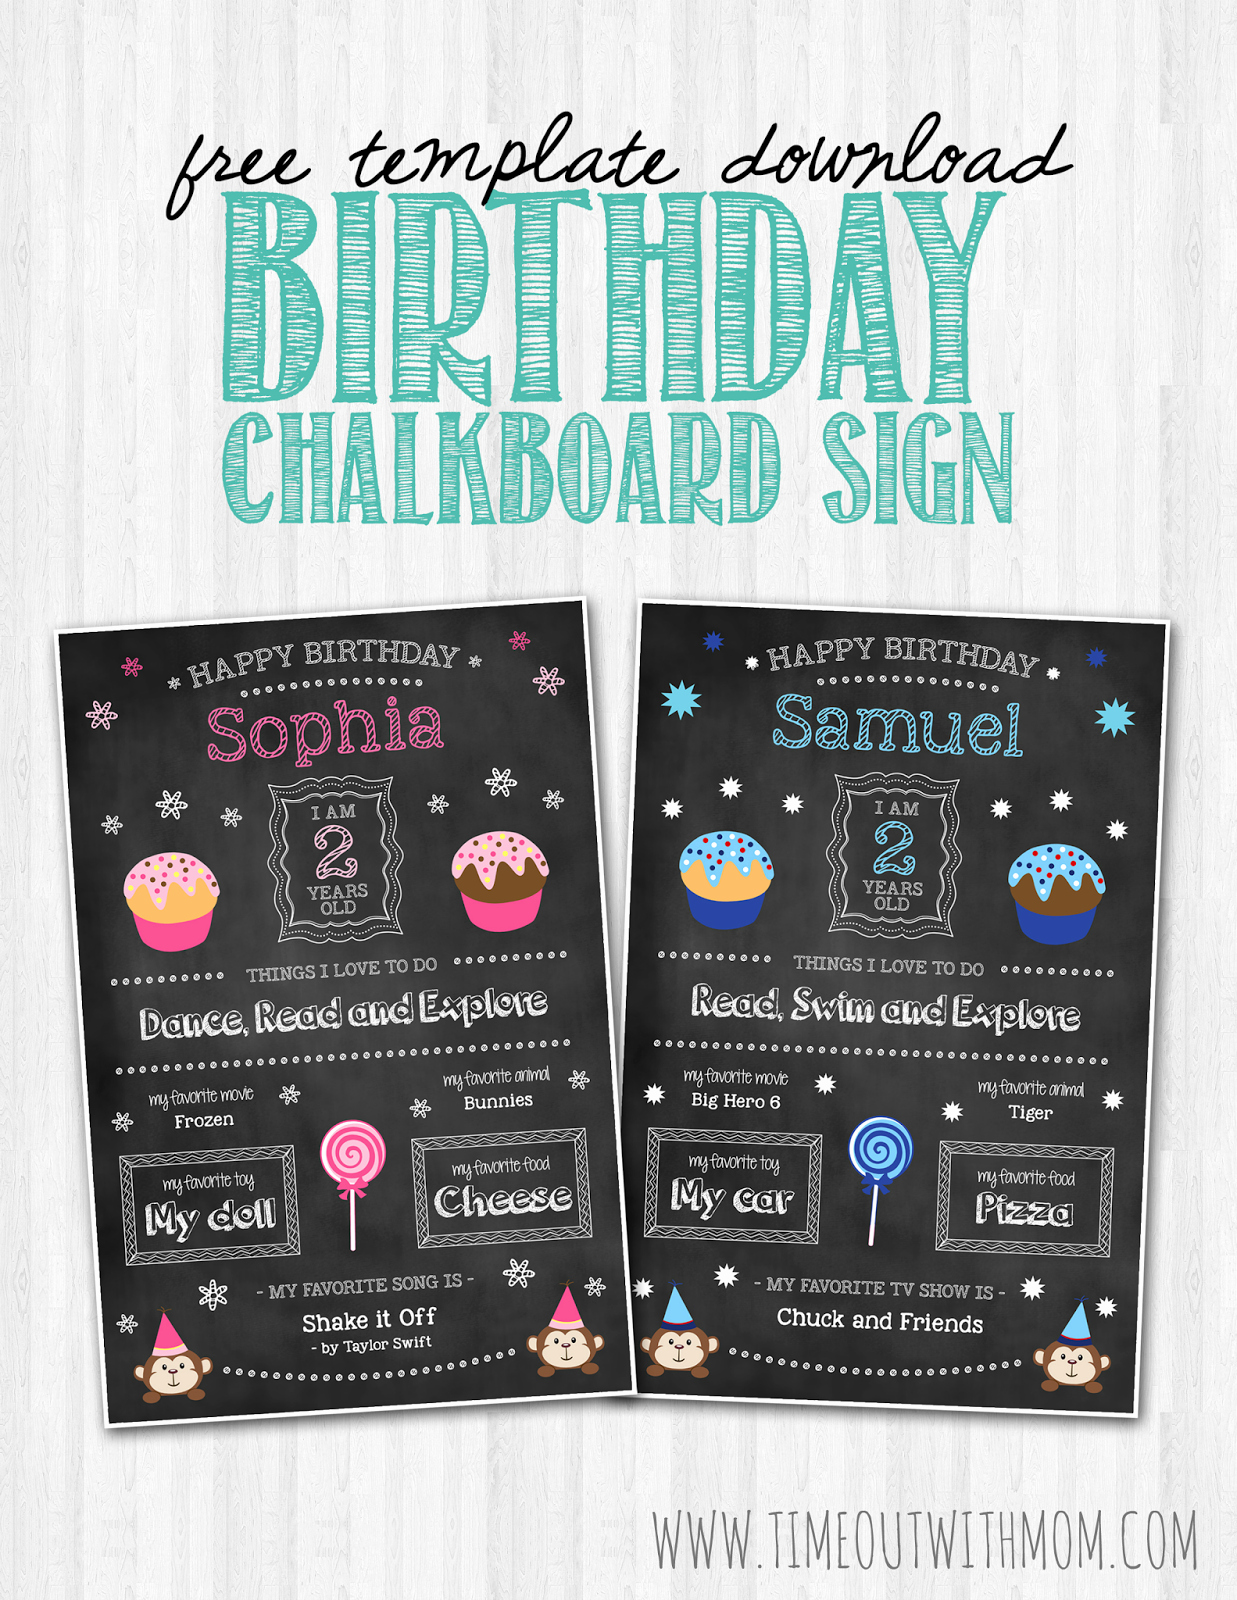 Birthday Chalkboard Sign Template and Tutorial